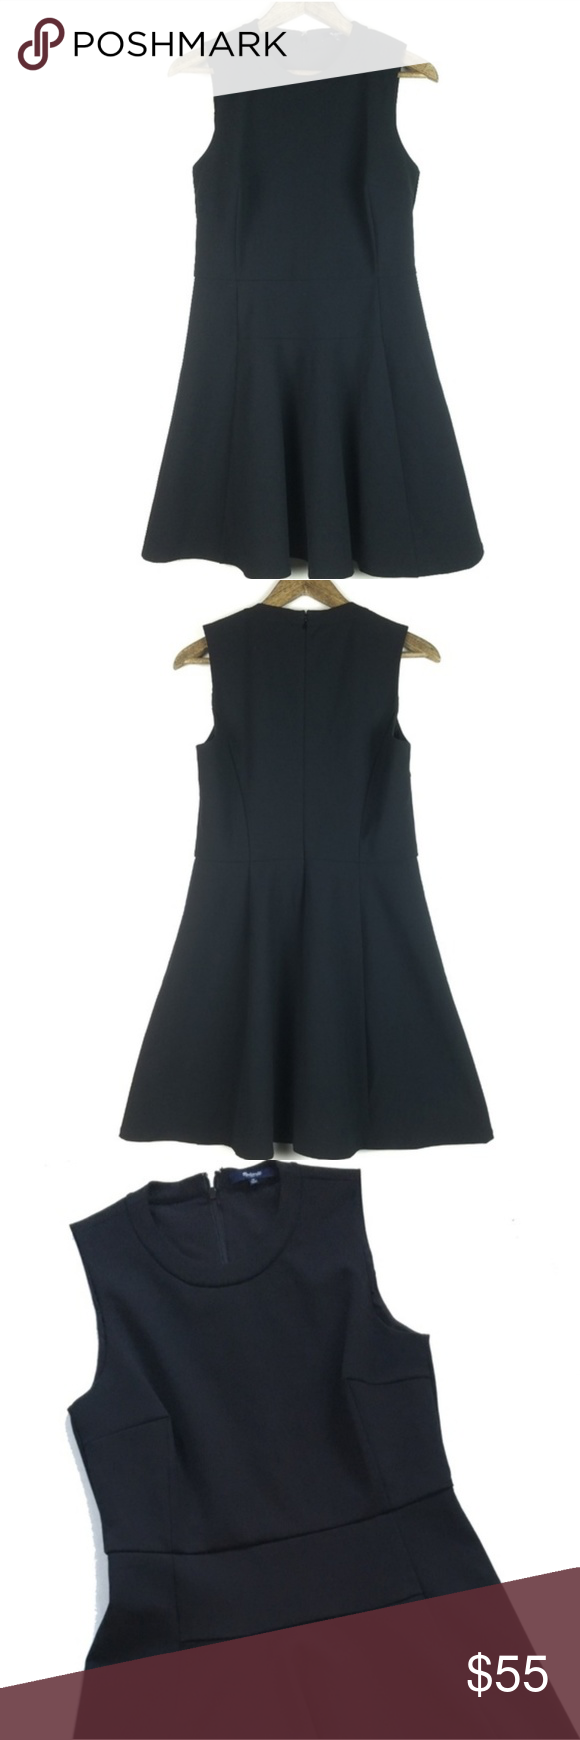 Madewell Black Classic Anywhere Sleeveless Dress Brand: Madewell Size: 4 Condition: EUC Color: Black Material: 88% Polyester, 12% Spandex; Lining 100% Polyester Style: B1090, The Anywhere Dress Measurements Lying Flat: Pit to Pit: 16 1/2